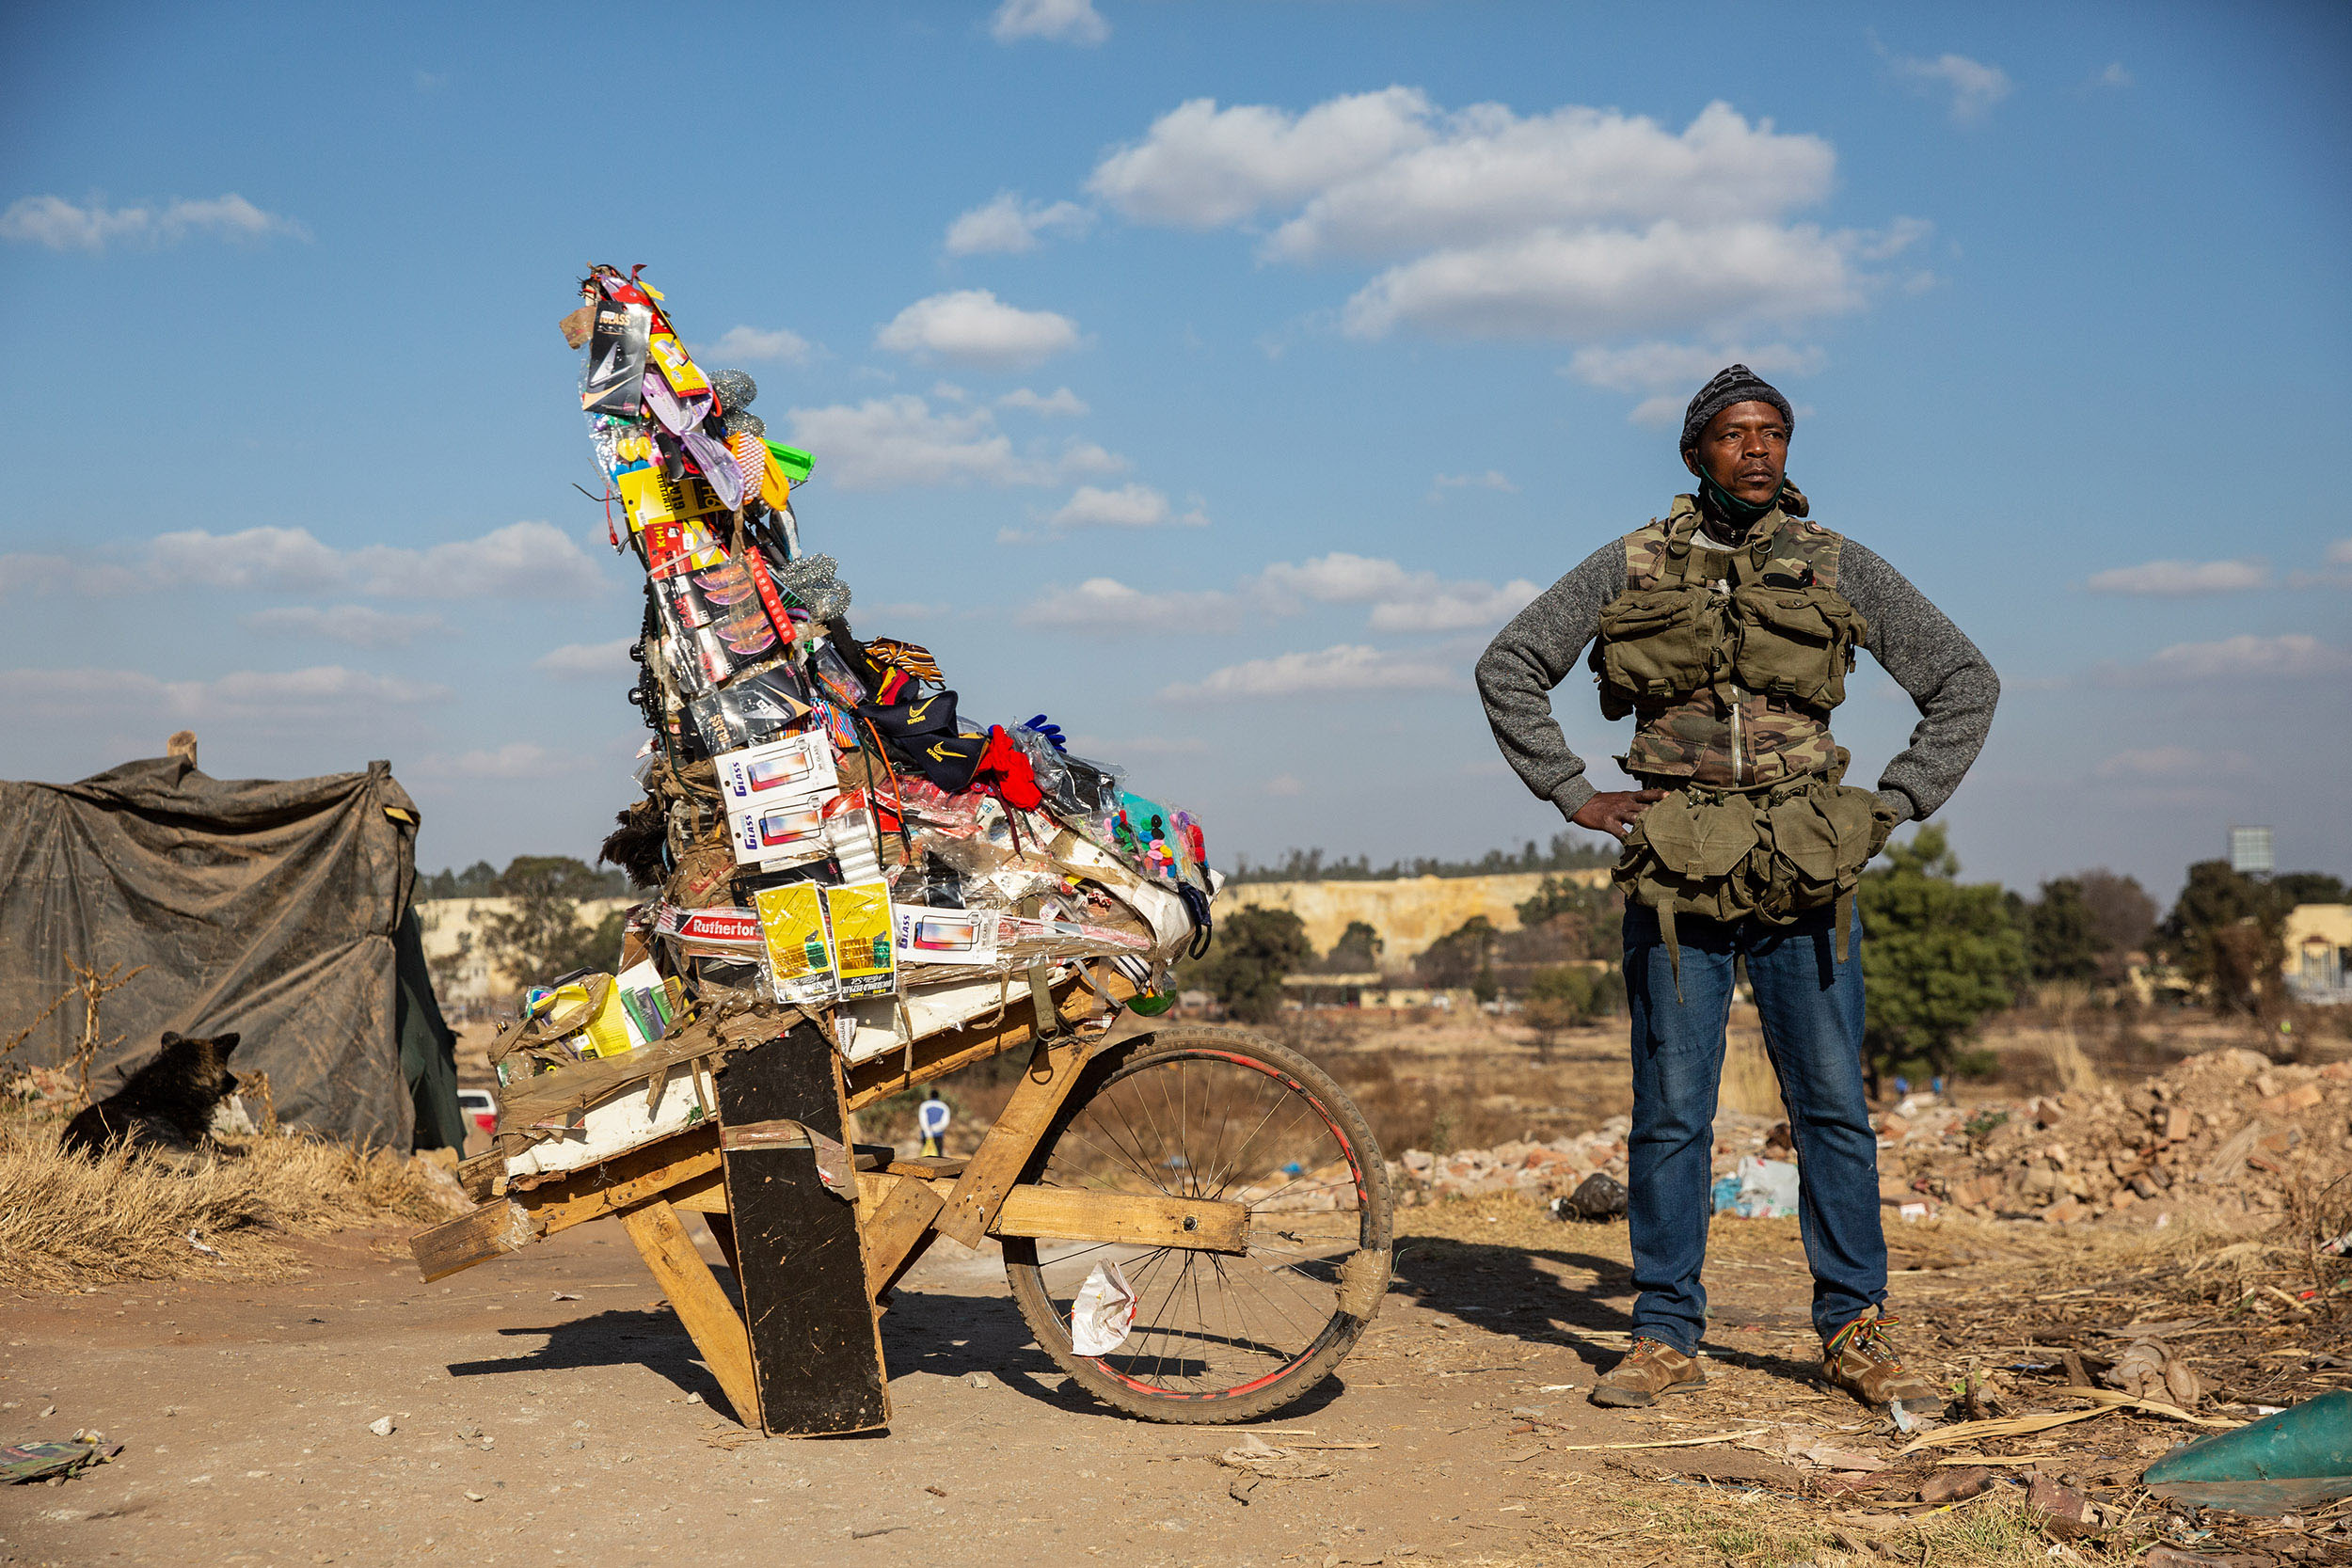 9 July 2020: Gift Shingange has been a travelling salesman in Makause for seven years. He sells all sorts of trinkets from  his custom-made trolley. He also performs ear piercings, fixes watches and punches extra holes in belts.